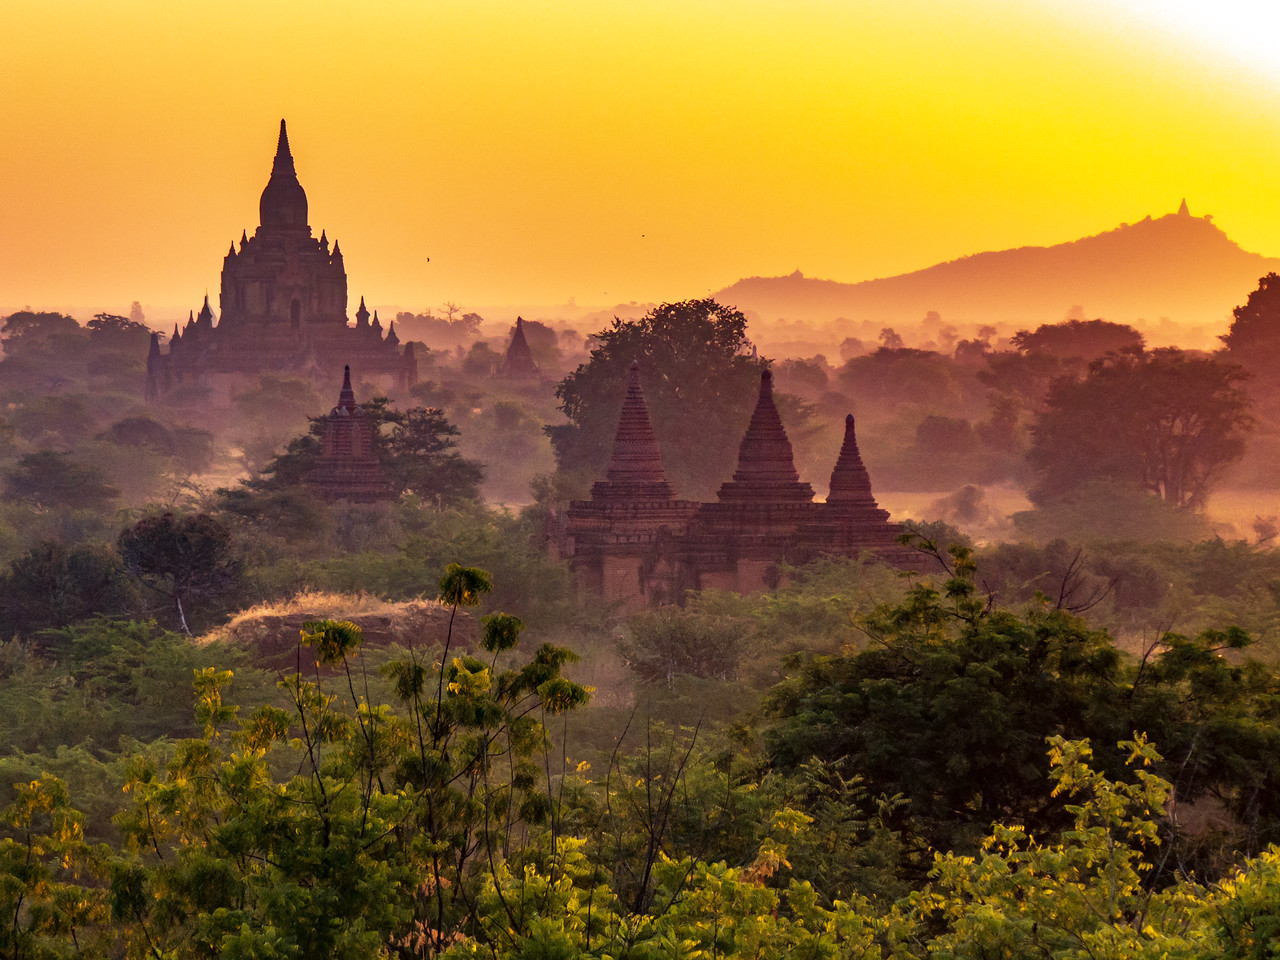 Sunrise on the Plains of Bagan